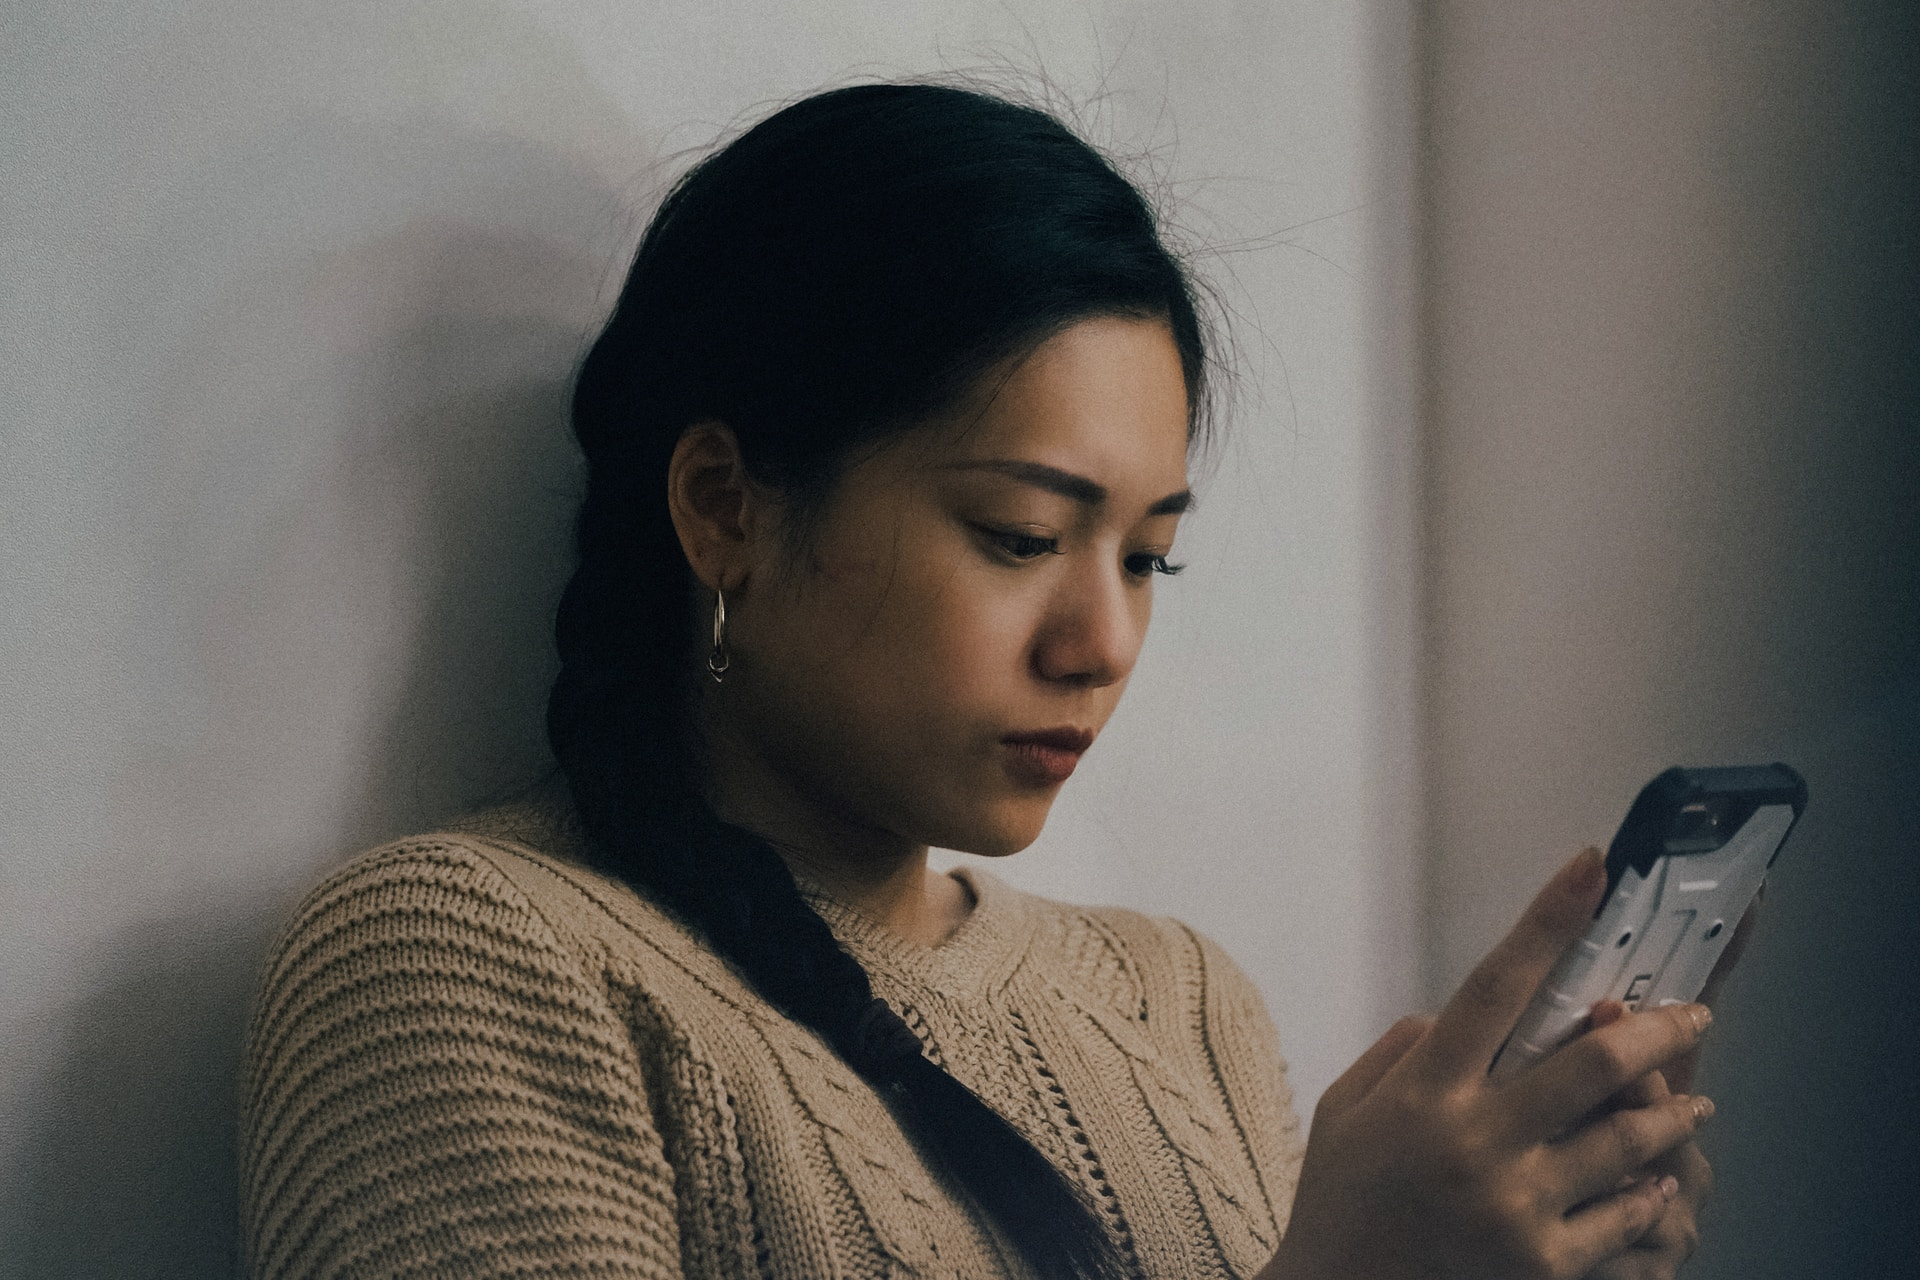 woman leaning back on white wall and using smartphone